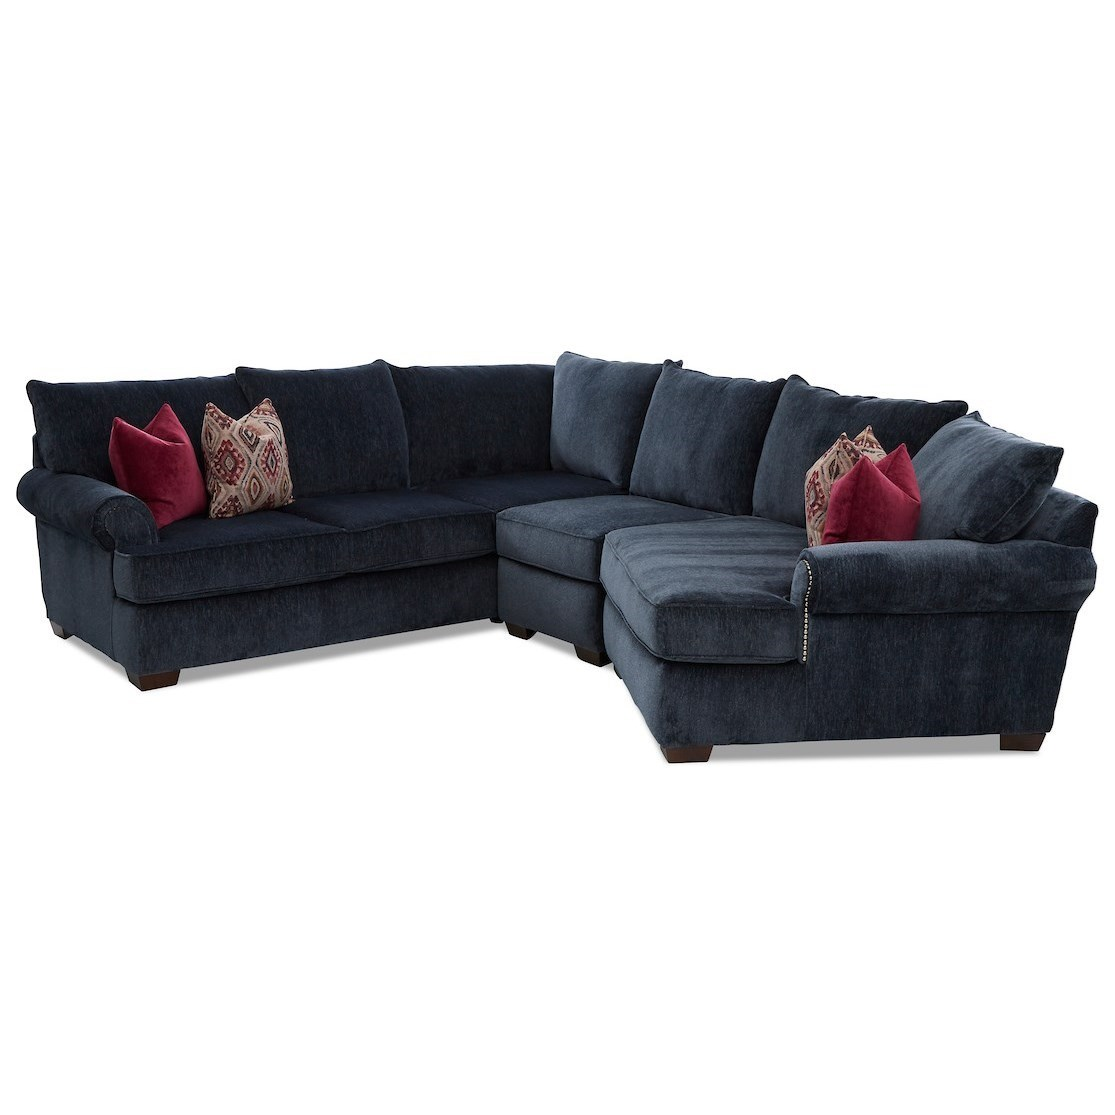 Ginger 4-Seat Sectional Sofa w/ RAF Cuddler Chair by Klaussner at Johnny Janosik